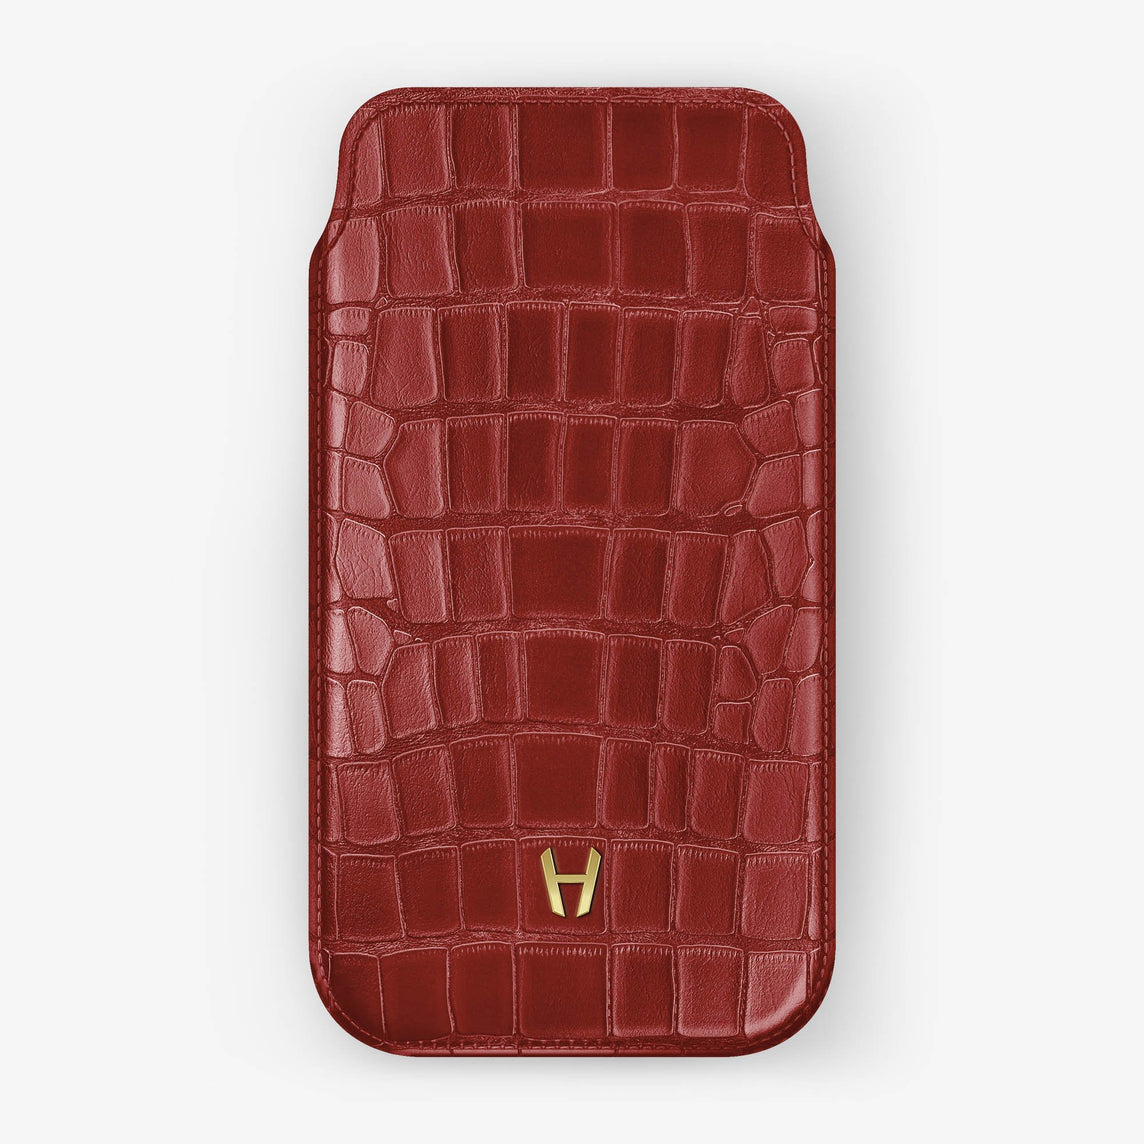 Alligator [iPhone Sleeve Case] [model:iphone-xsmax-case] [colour:red] [finishing:yellow-gold]